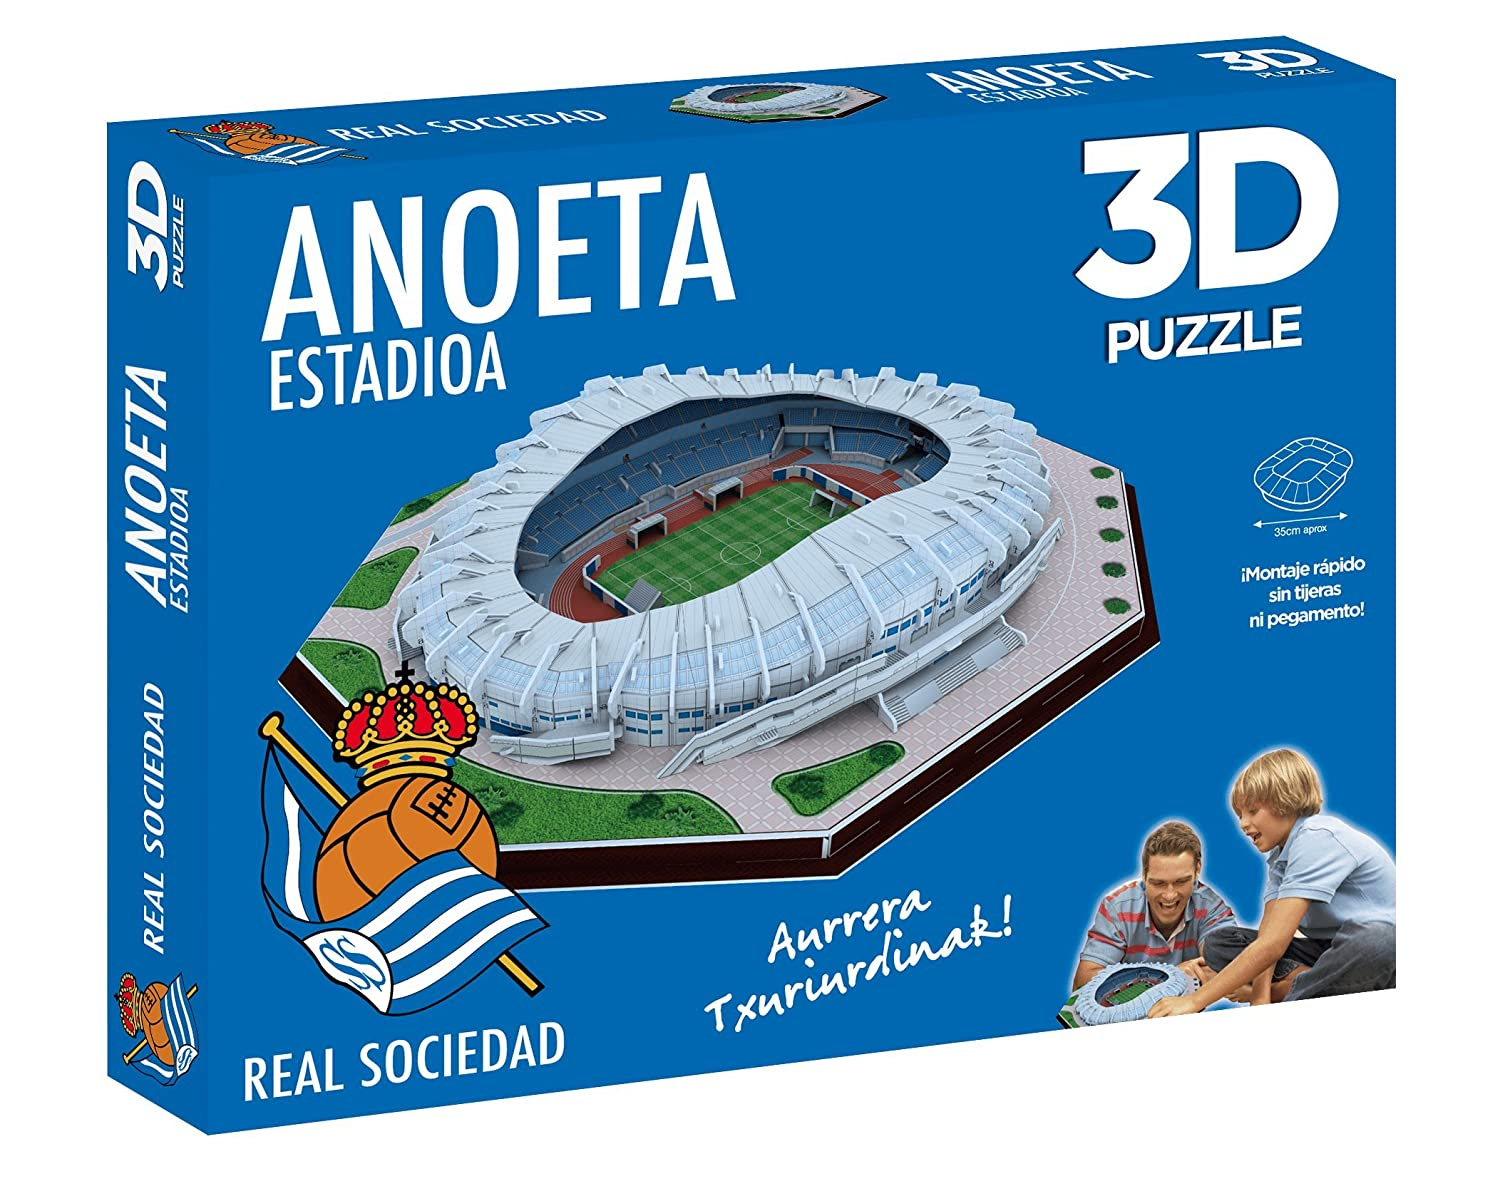 1f5fbc0f1357a Real Sociedad 3d Puzzle Stadium anoeta (Official Product)  Amazon.co.uk   Toys   Games